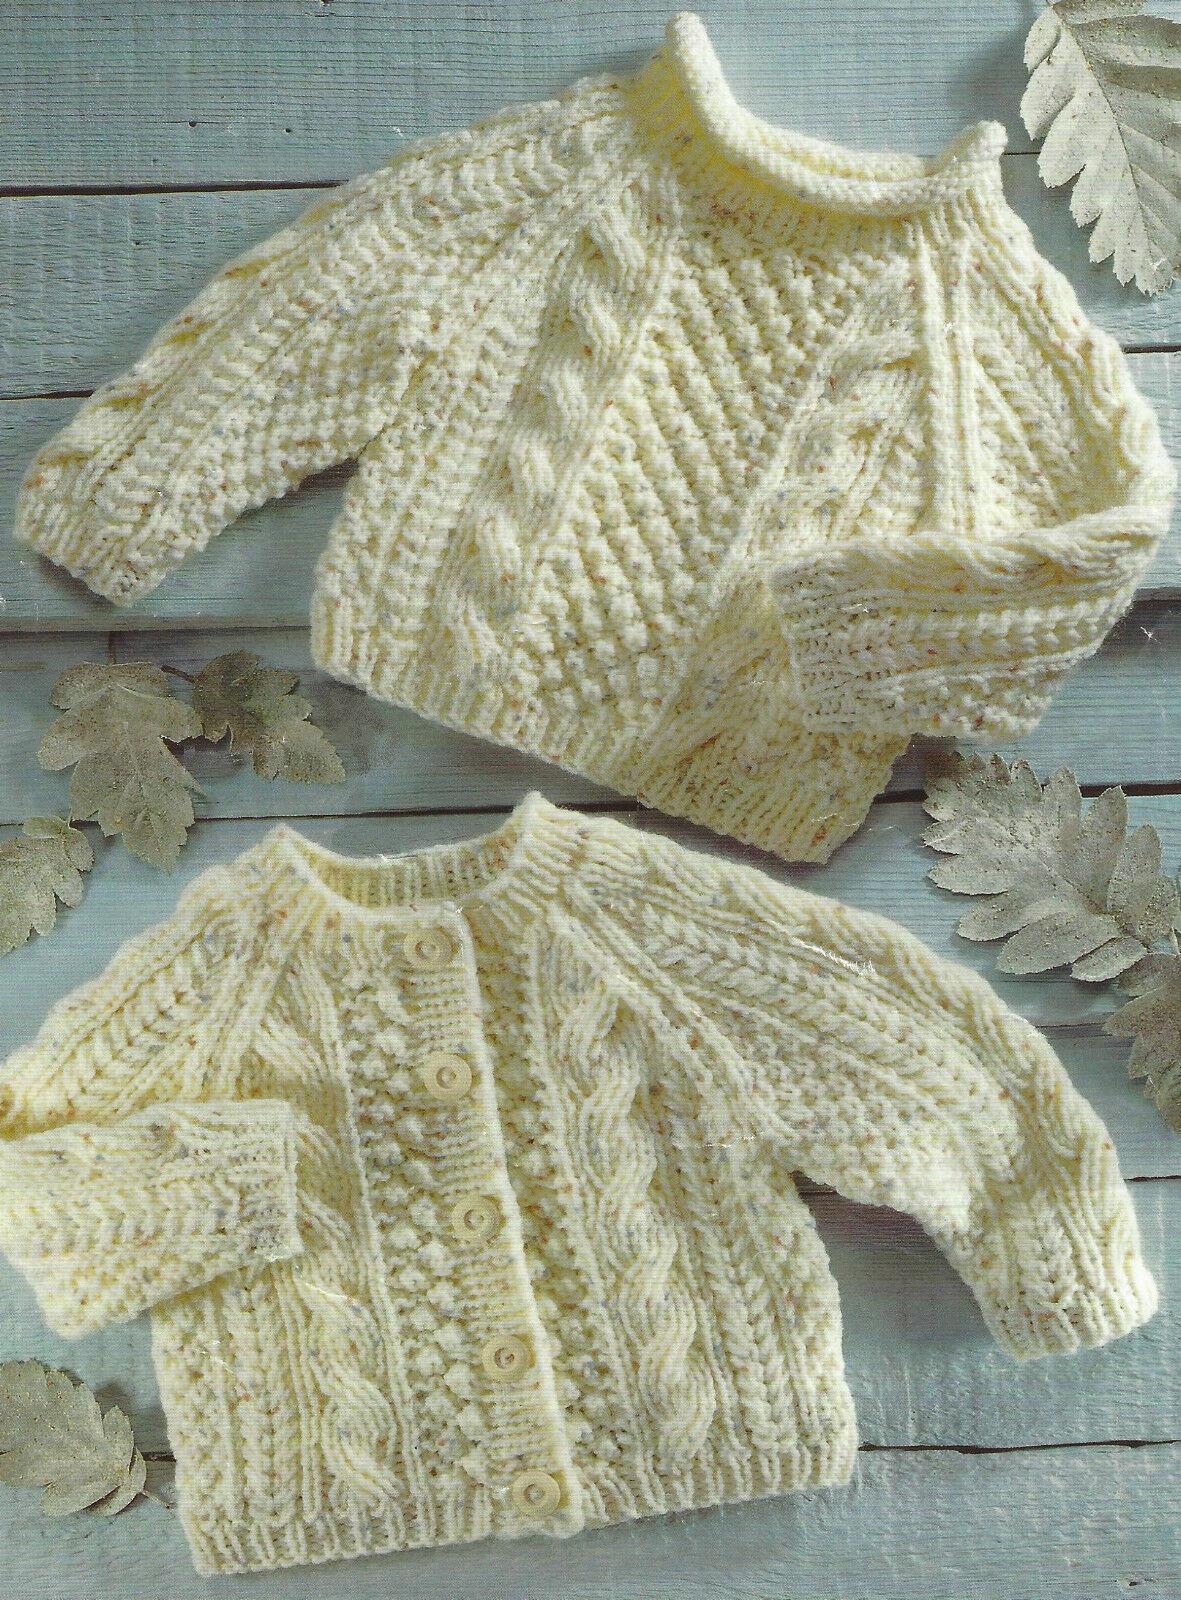 Knitting Pattern Aran Jumper : Aran Knitting Pattern Cardigan Sweater with cables Baby Girls Boys 16-26